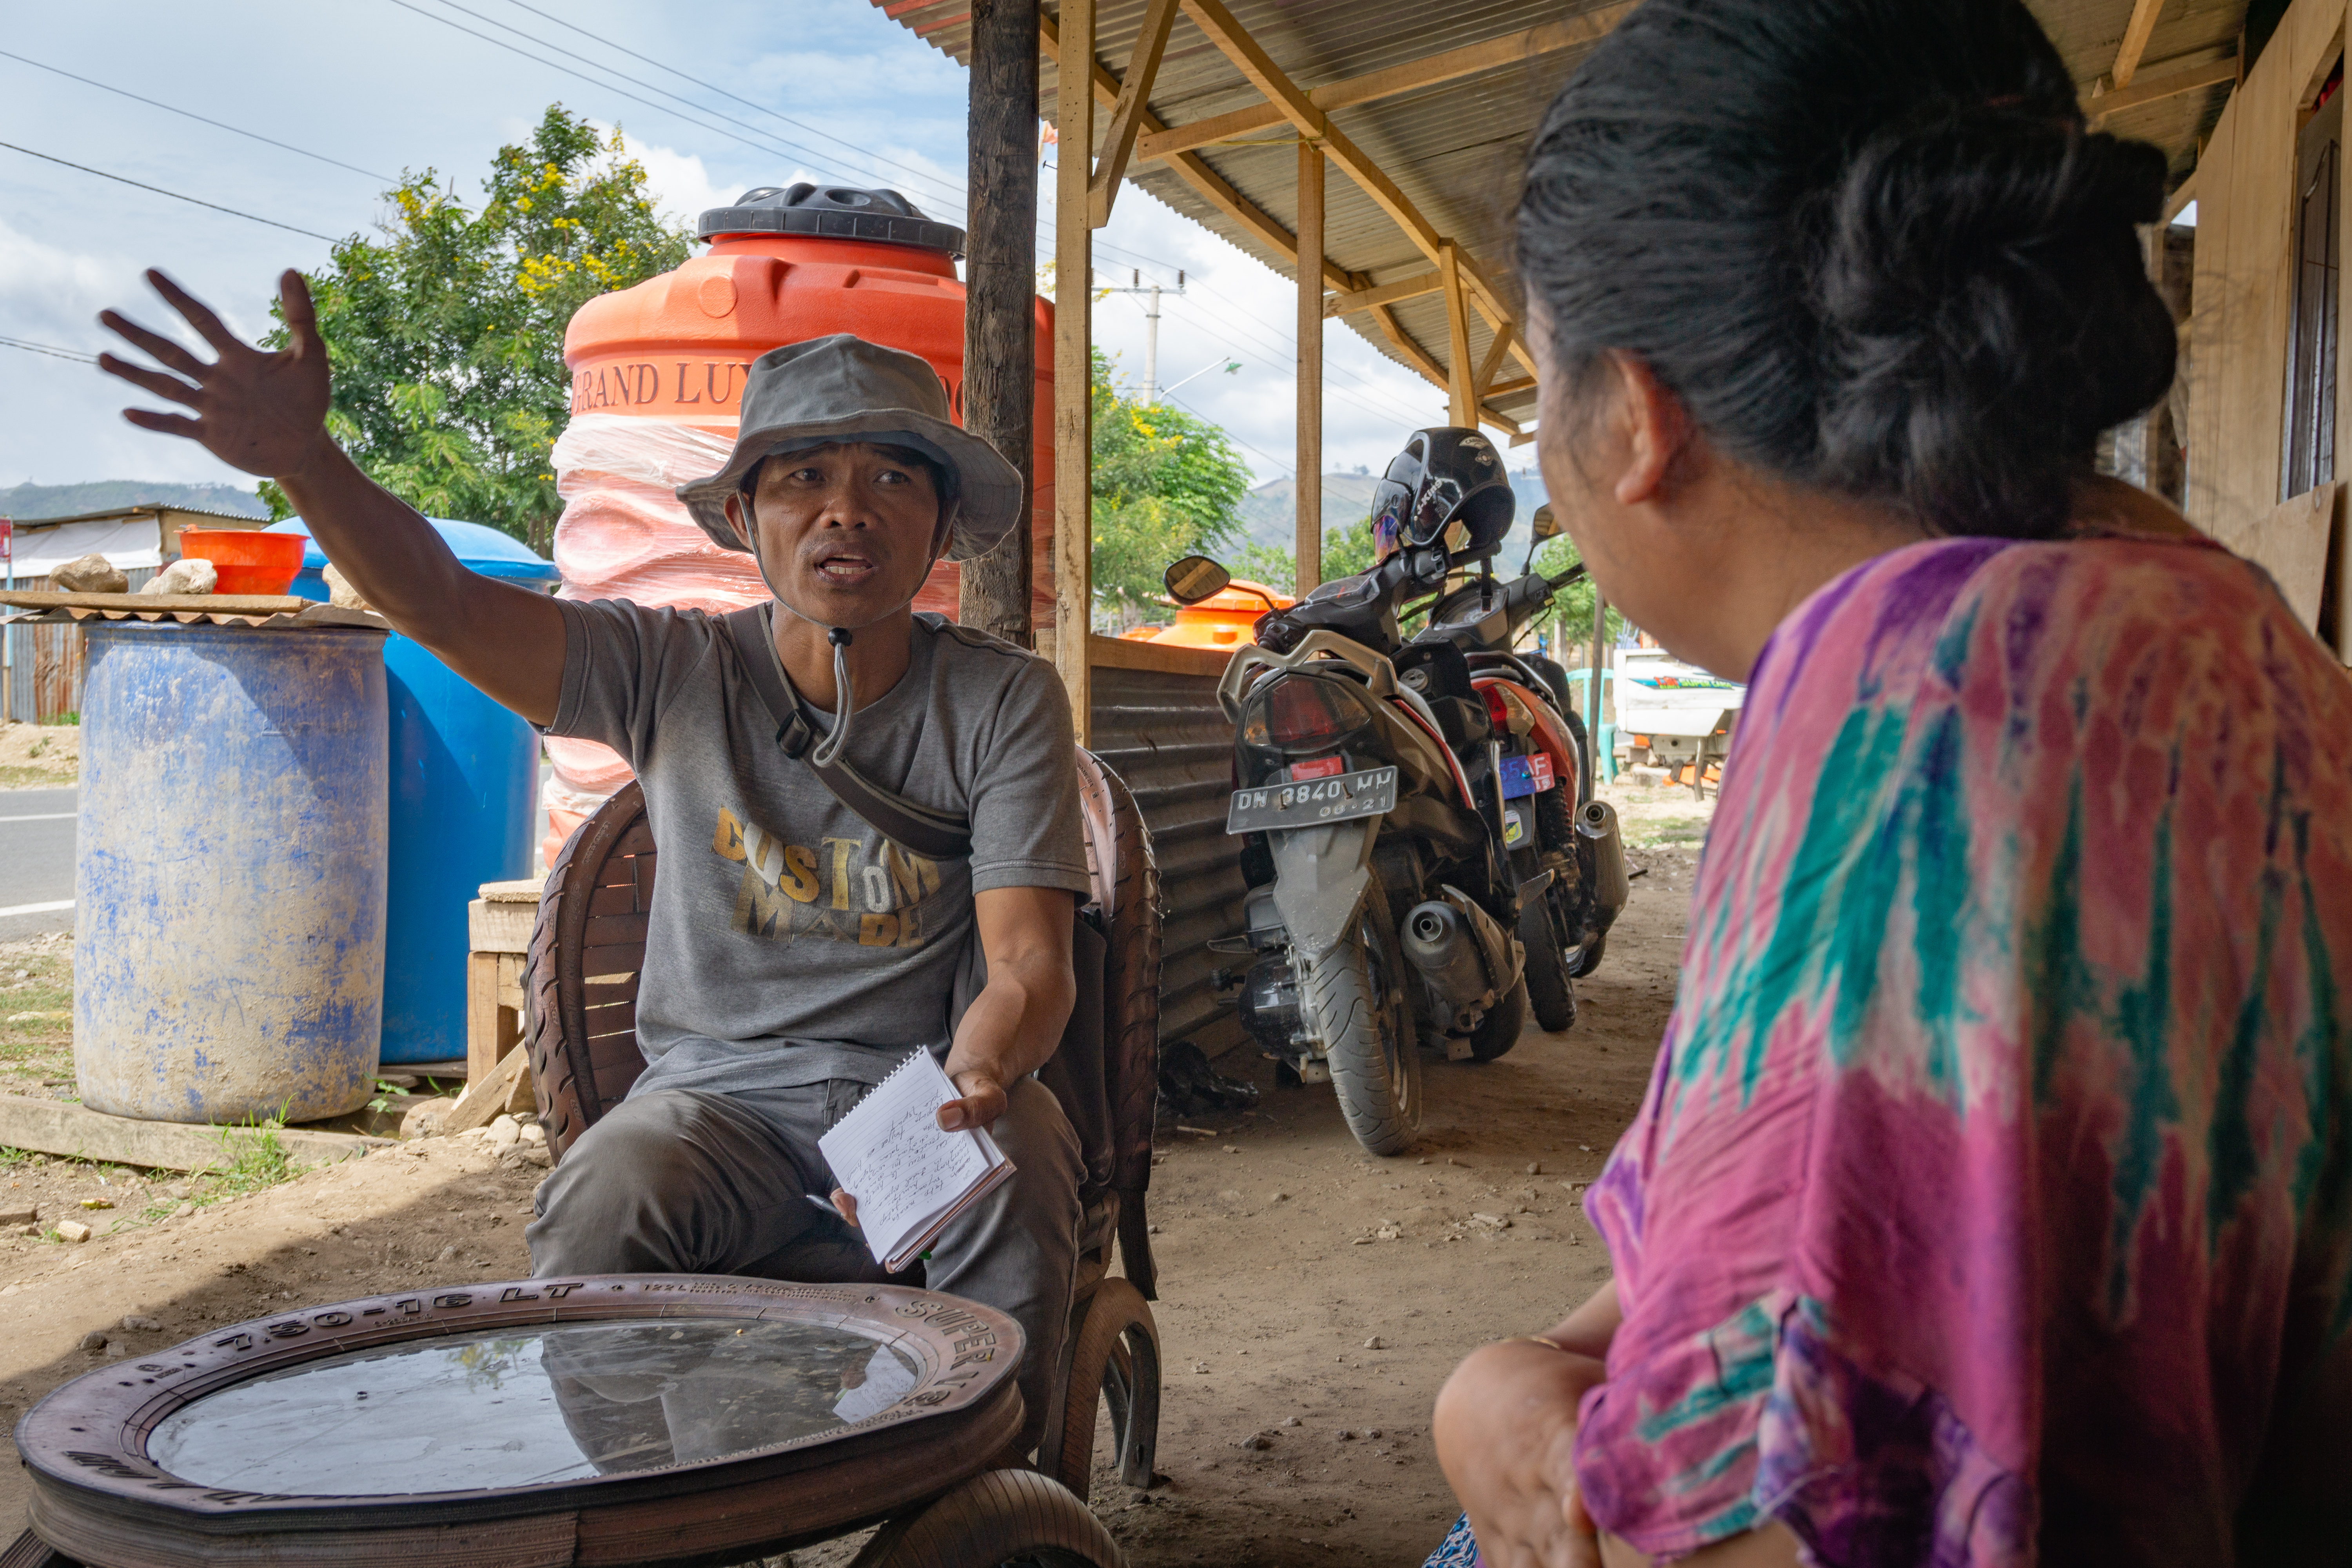 Local journalist Yardin Hasan interviews a family who built their own wooden shelter on the outskirts of Palu, Indonesia